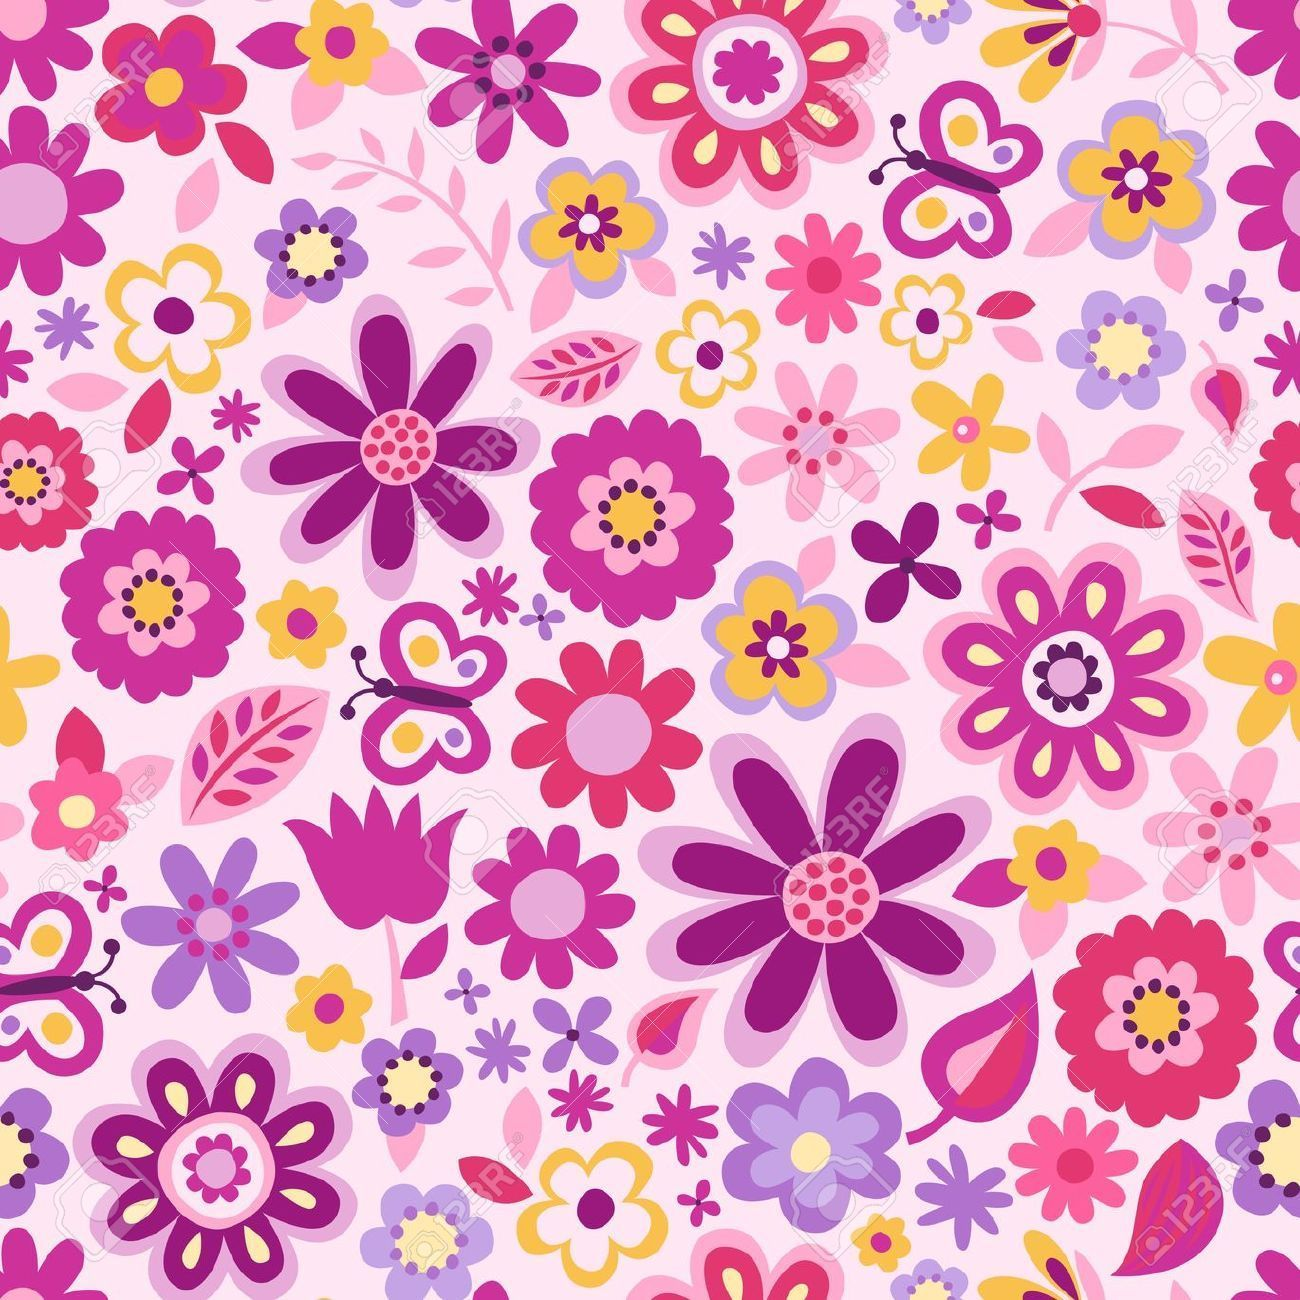 Cute Flower Design Wallpapers Top Free Cute Flower Design